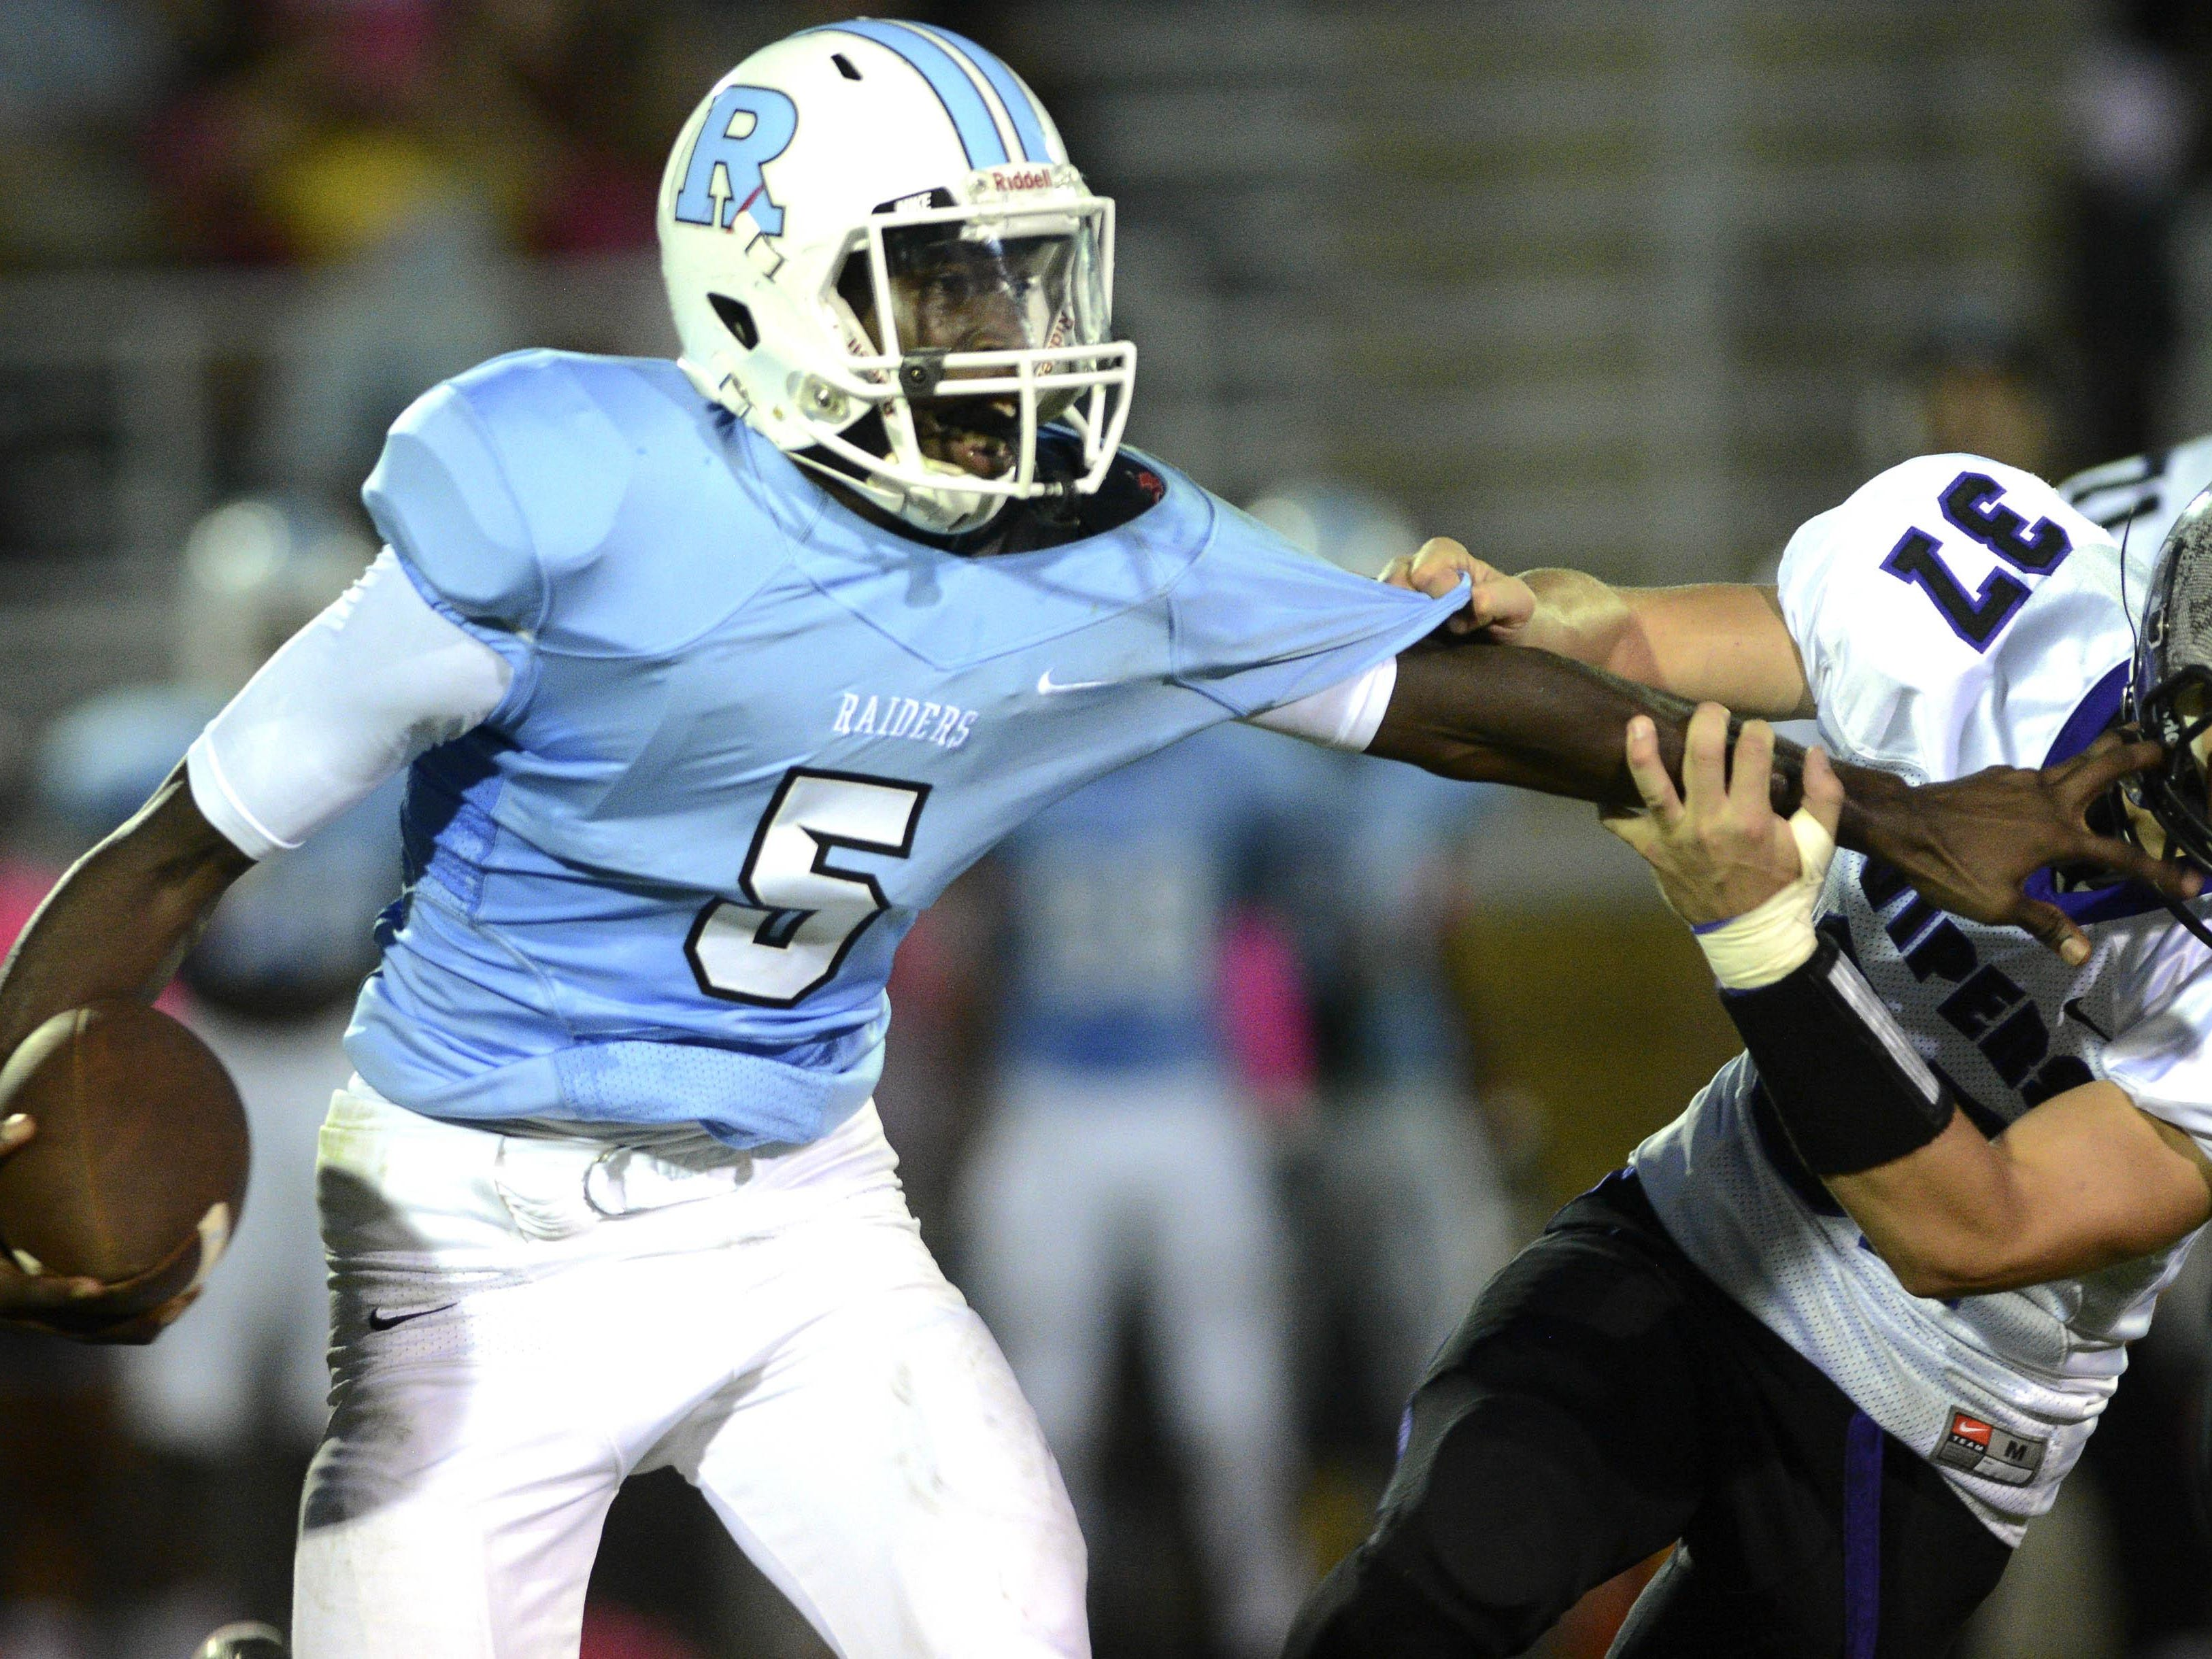 Rockledge QB Jaquez Lyons tries to fend off the tackle of Space Coast player Jared Spinner (37) during Friday's game at McLarty Stadium.